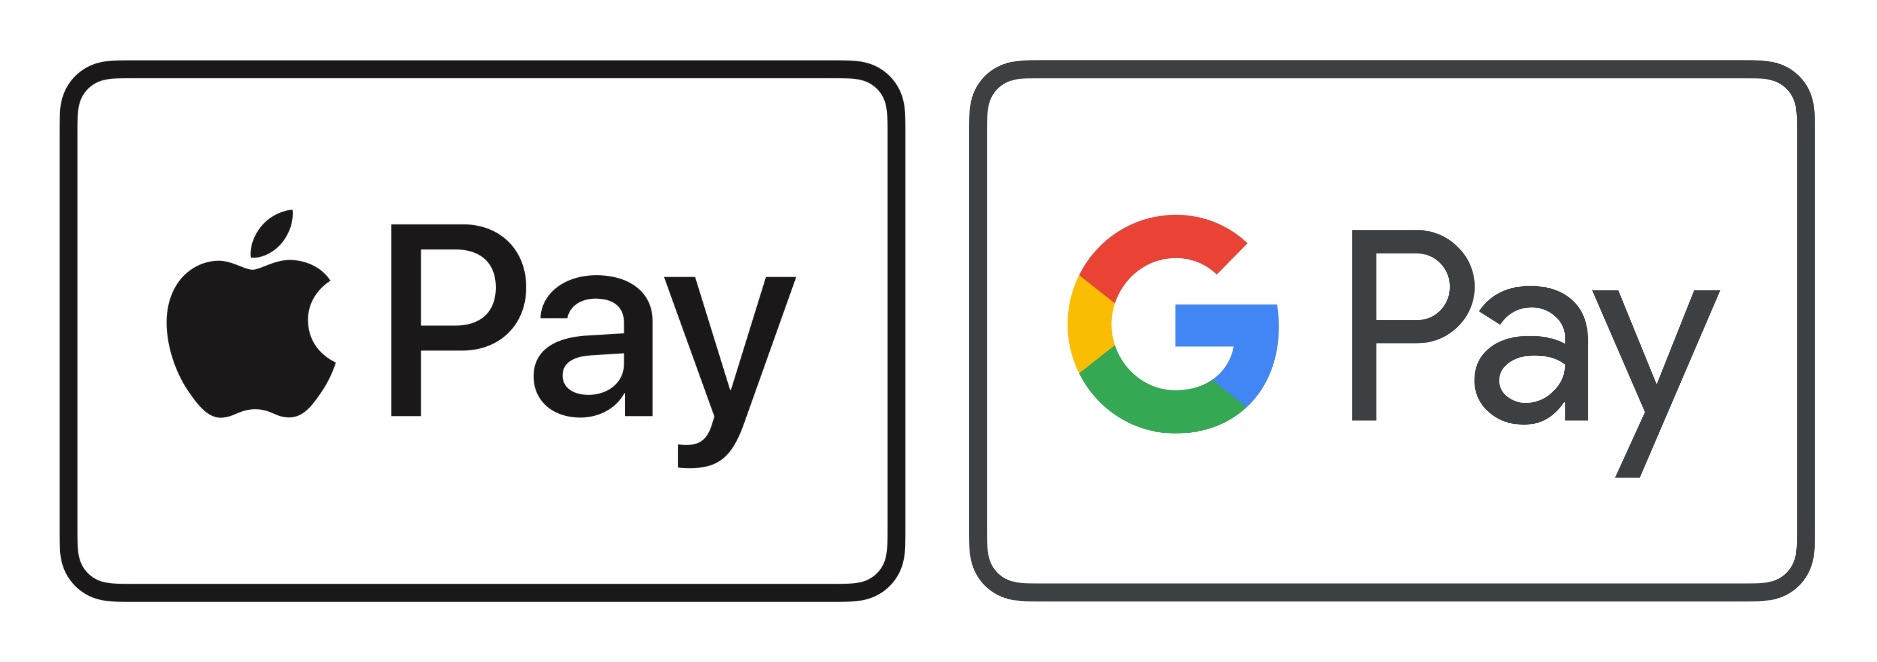 Apple Pay / Google Pay